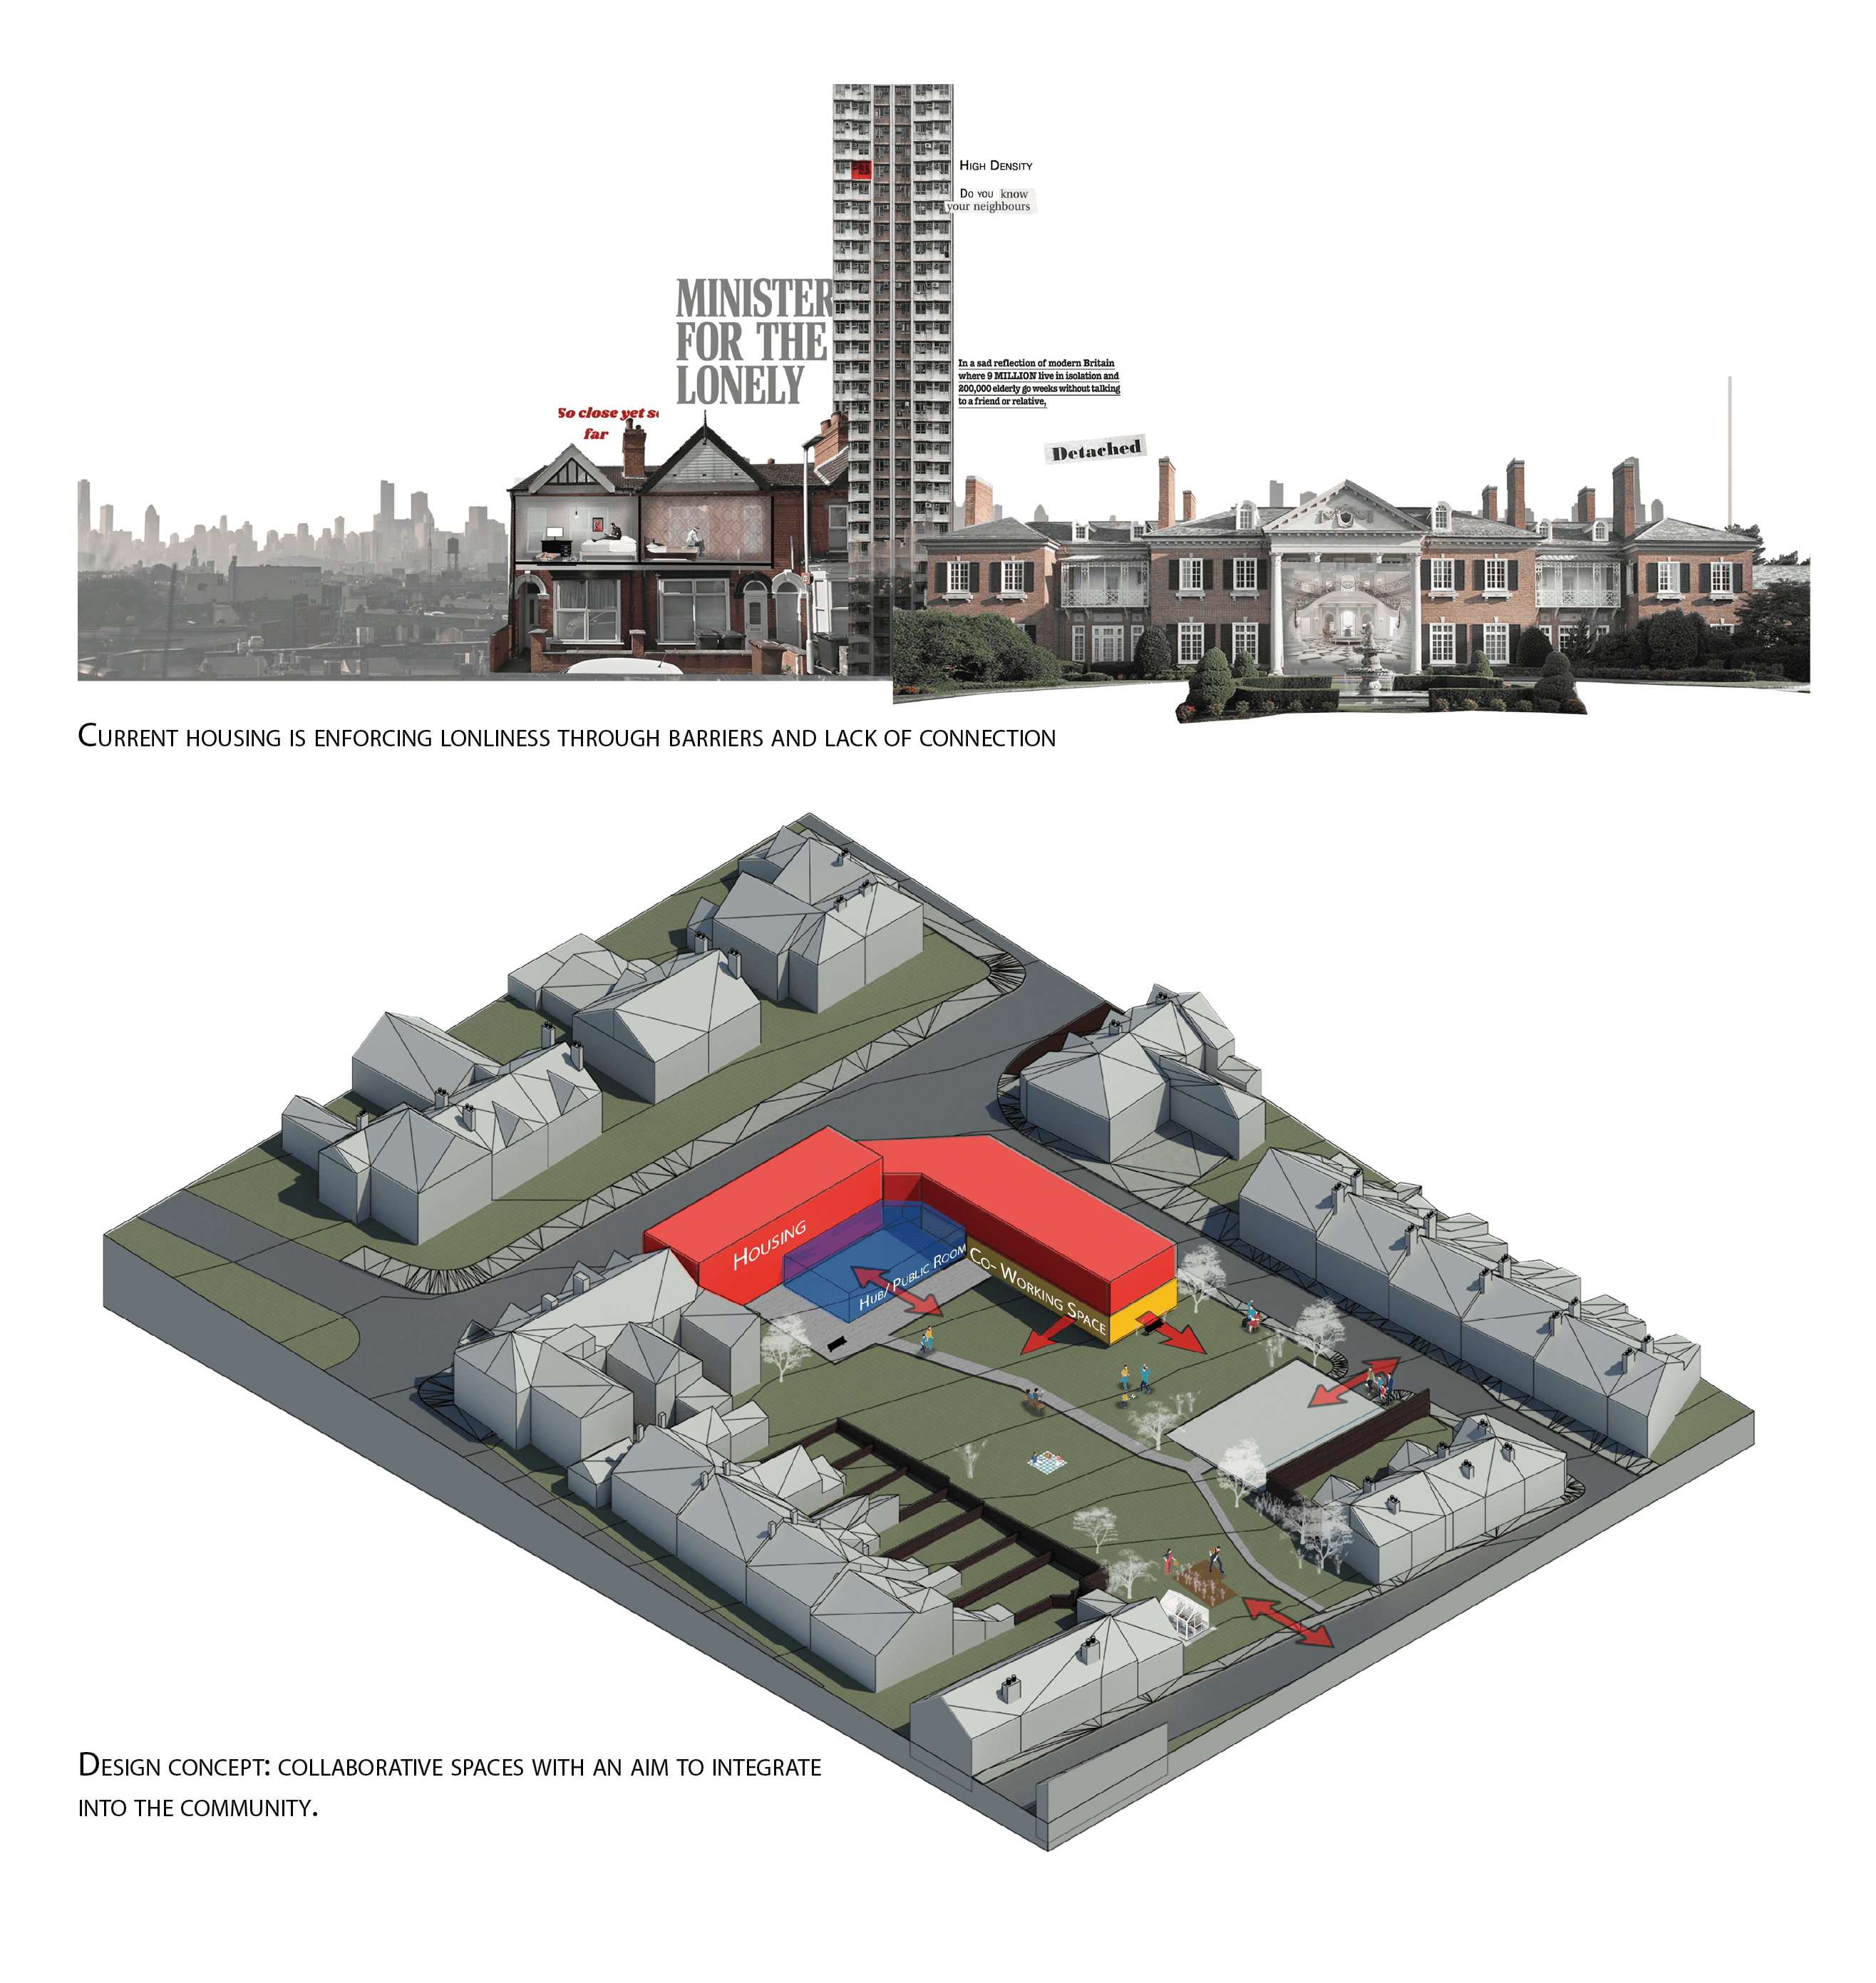 Cross section of a number of buildings include Grenfell Tower and a design concept depicting collaborative spaces.